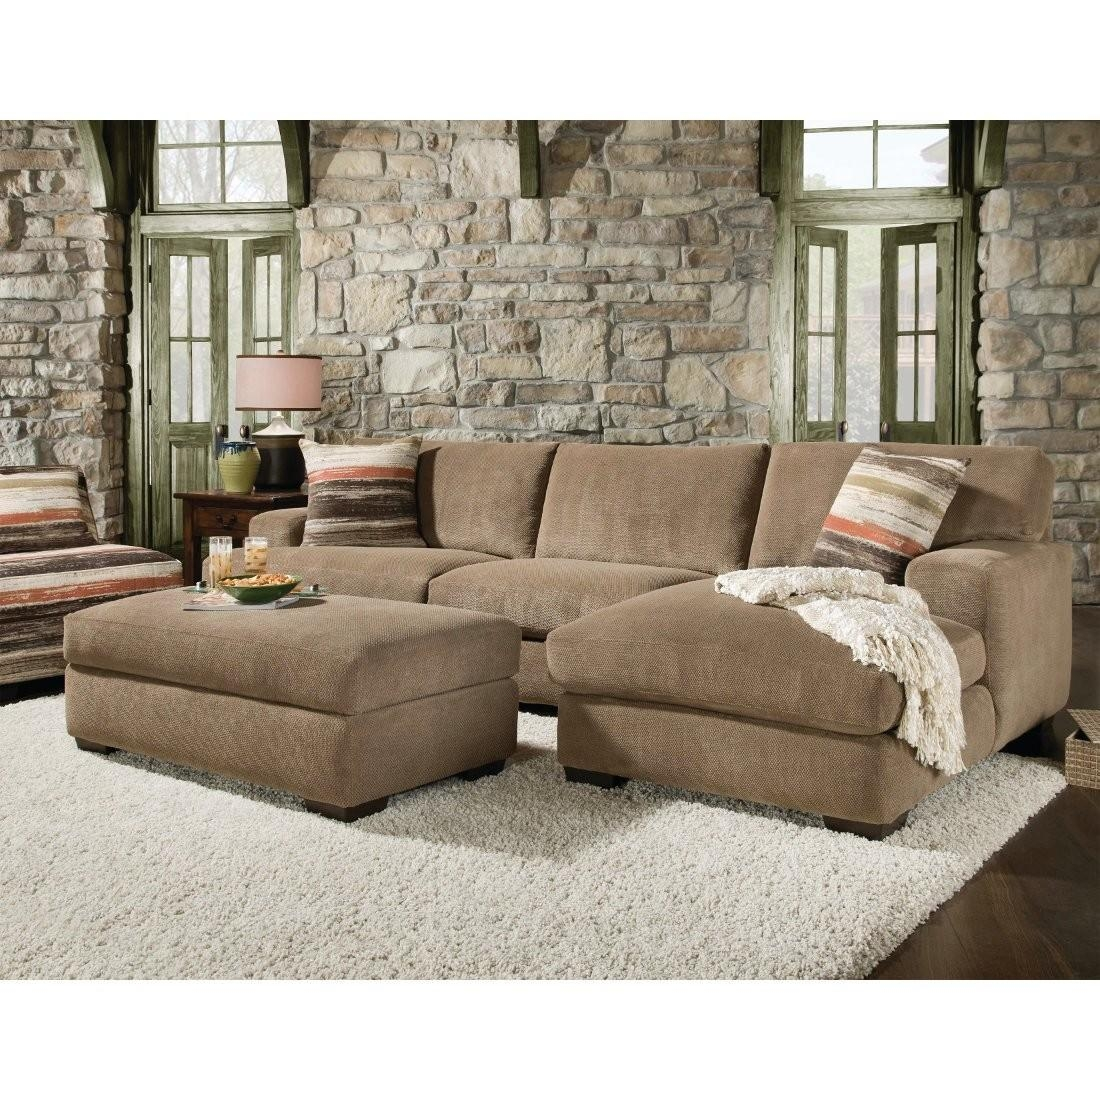 Small Sectional Sofa With Chaise And Ottoman   Tehranmix Decoration In Sectional With Ottoman And Chaise (Image 18 of 20)